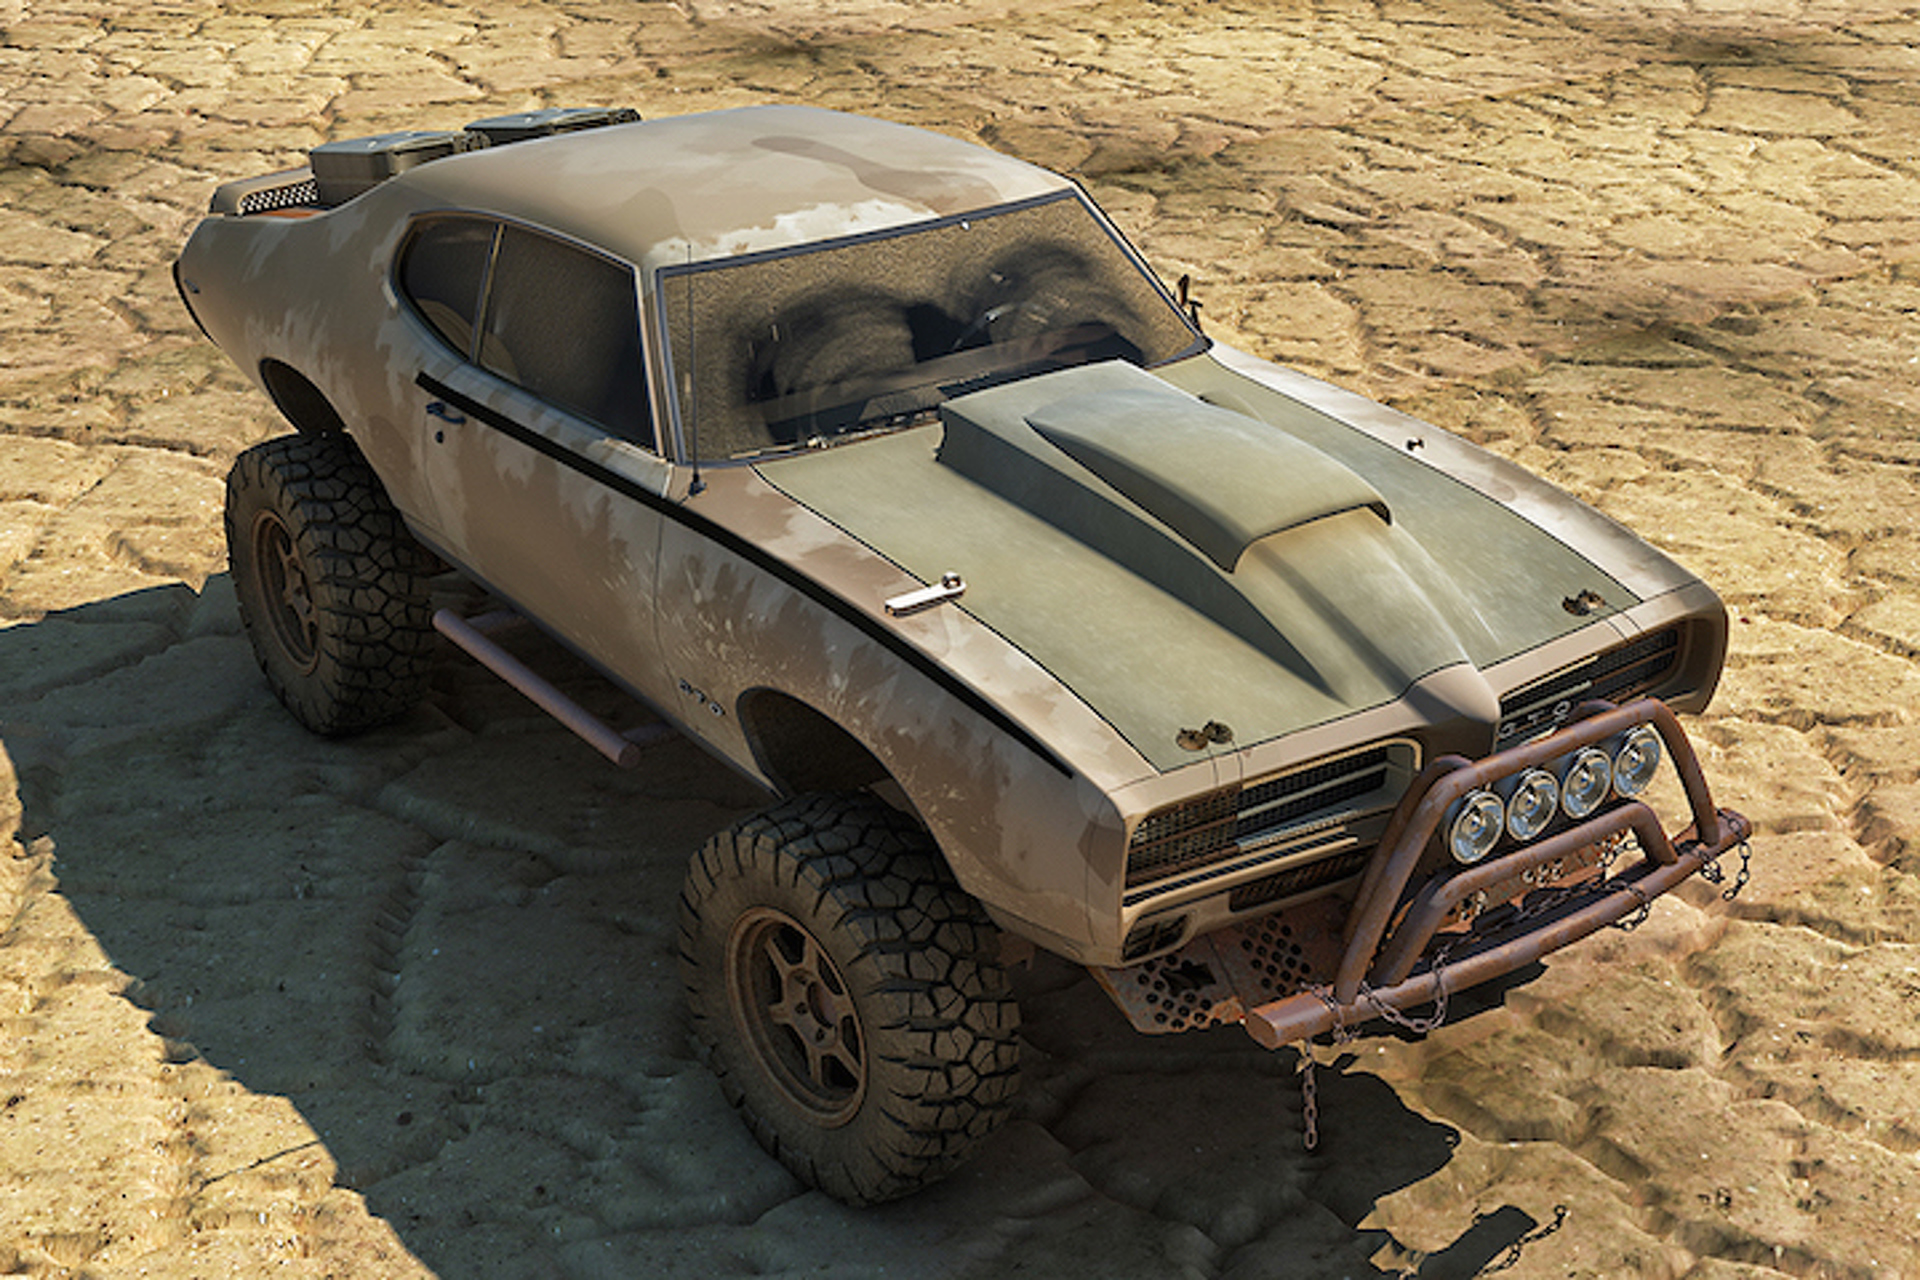 This Pontiac Gto Looks Like Something Straight Out Of Mad Max